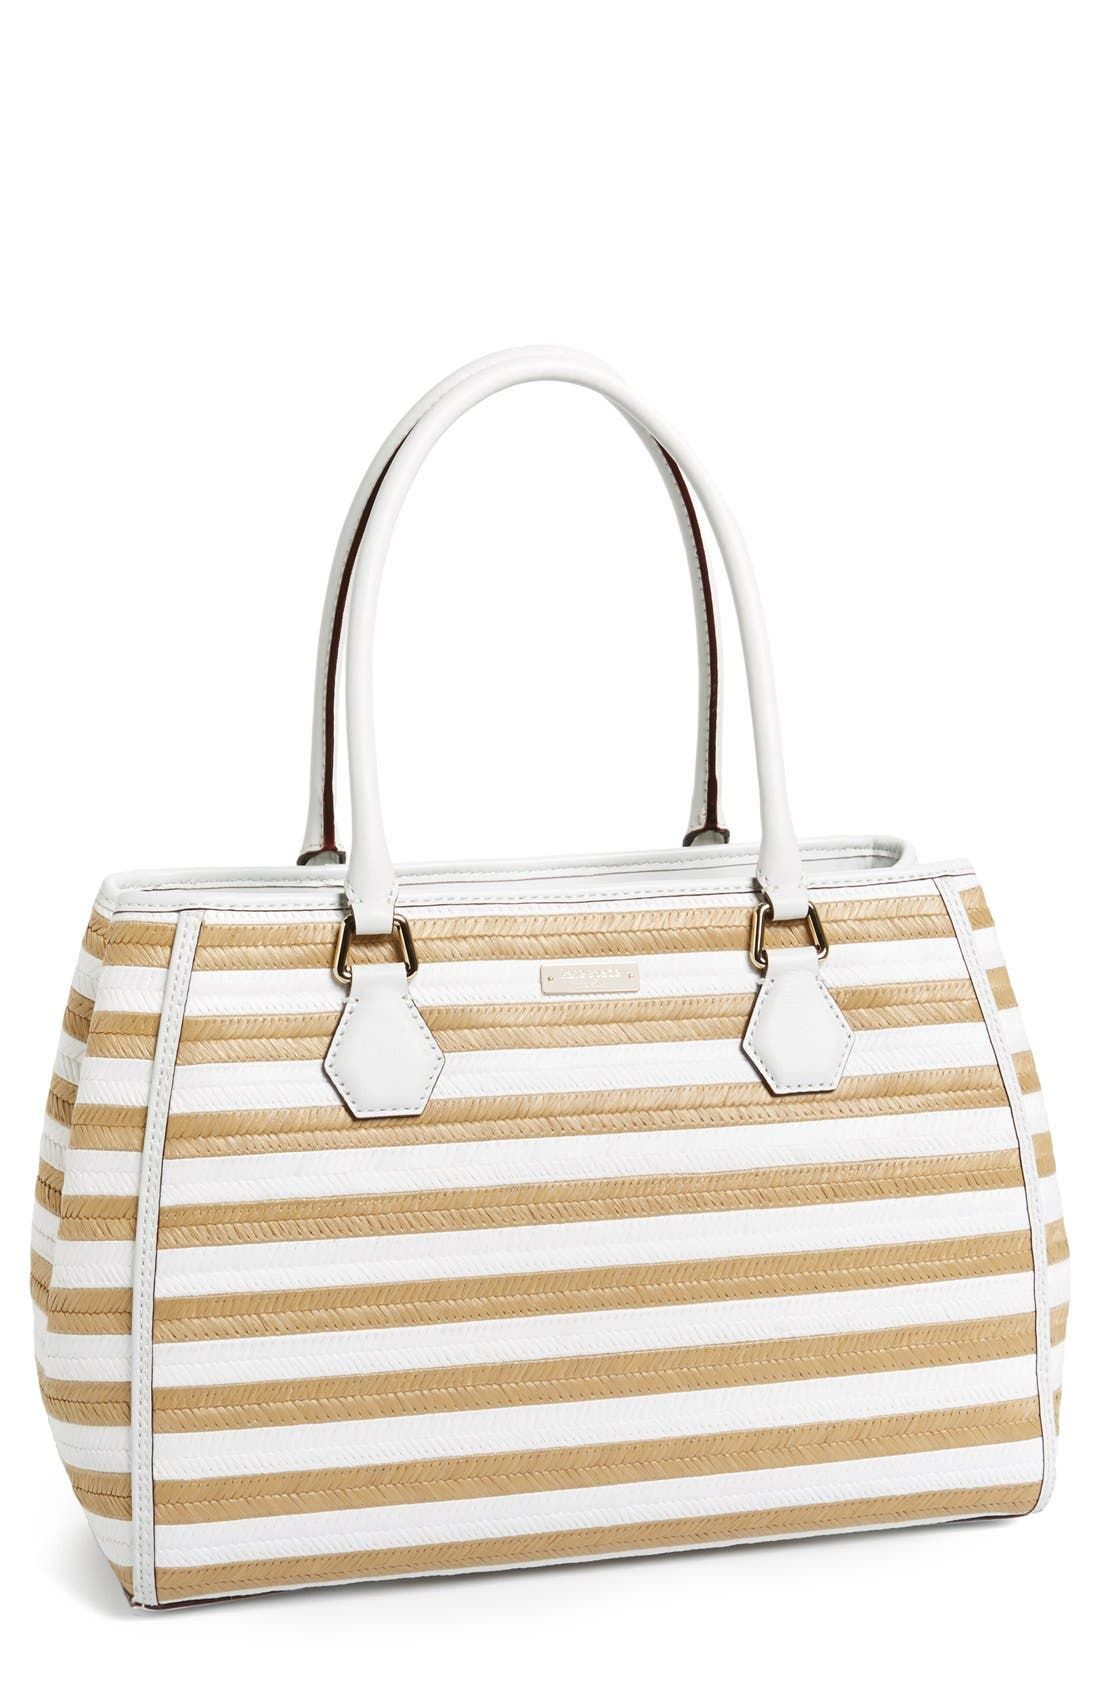 Main Image - kate spade new york 'catherine street - wensley' straw tote